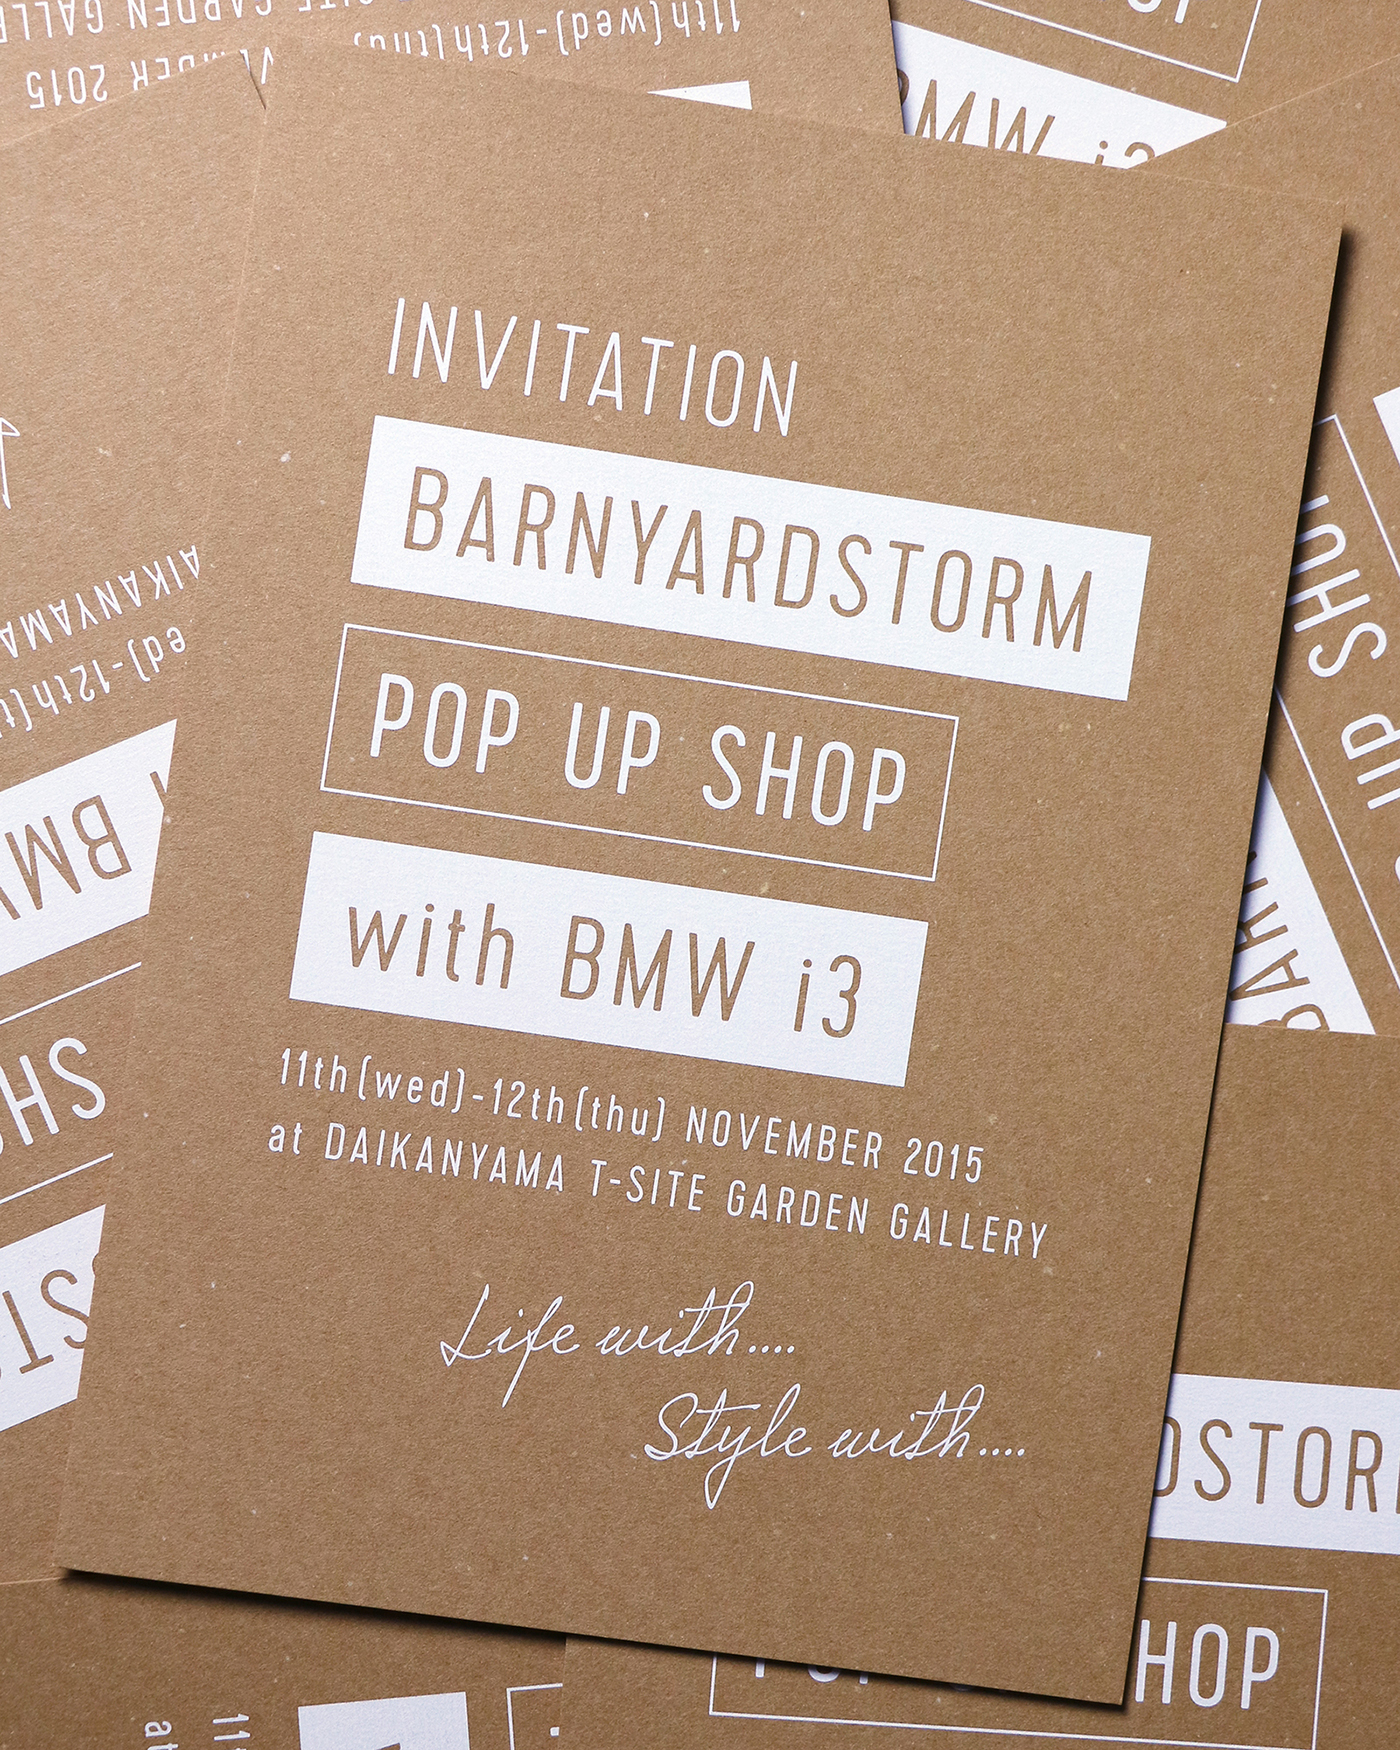 Barnyardstorm Pop Up Shop Insense Inc